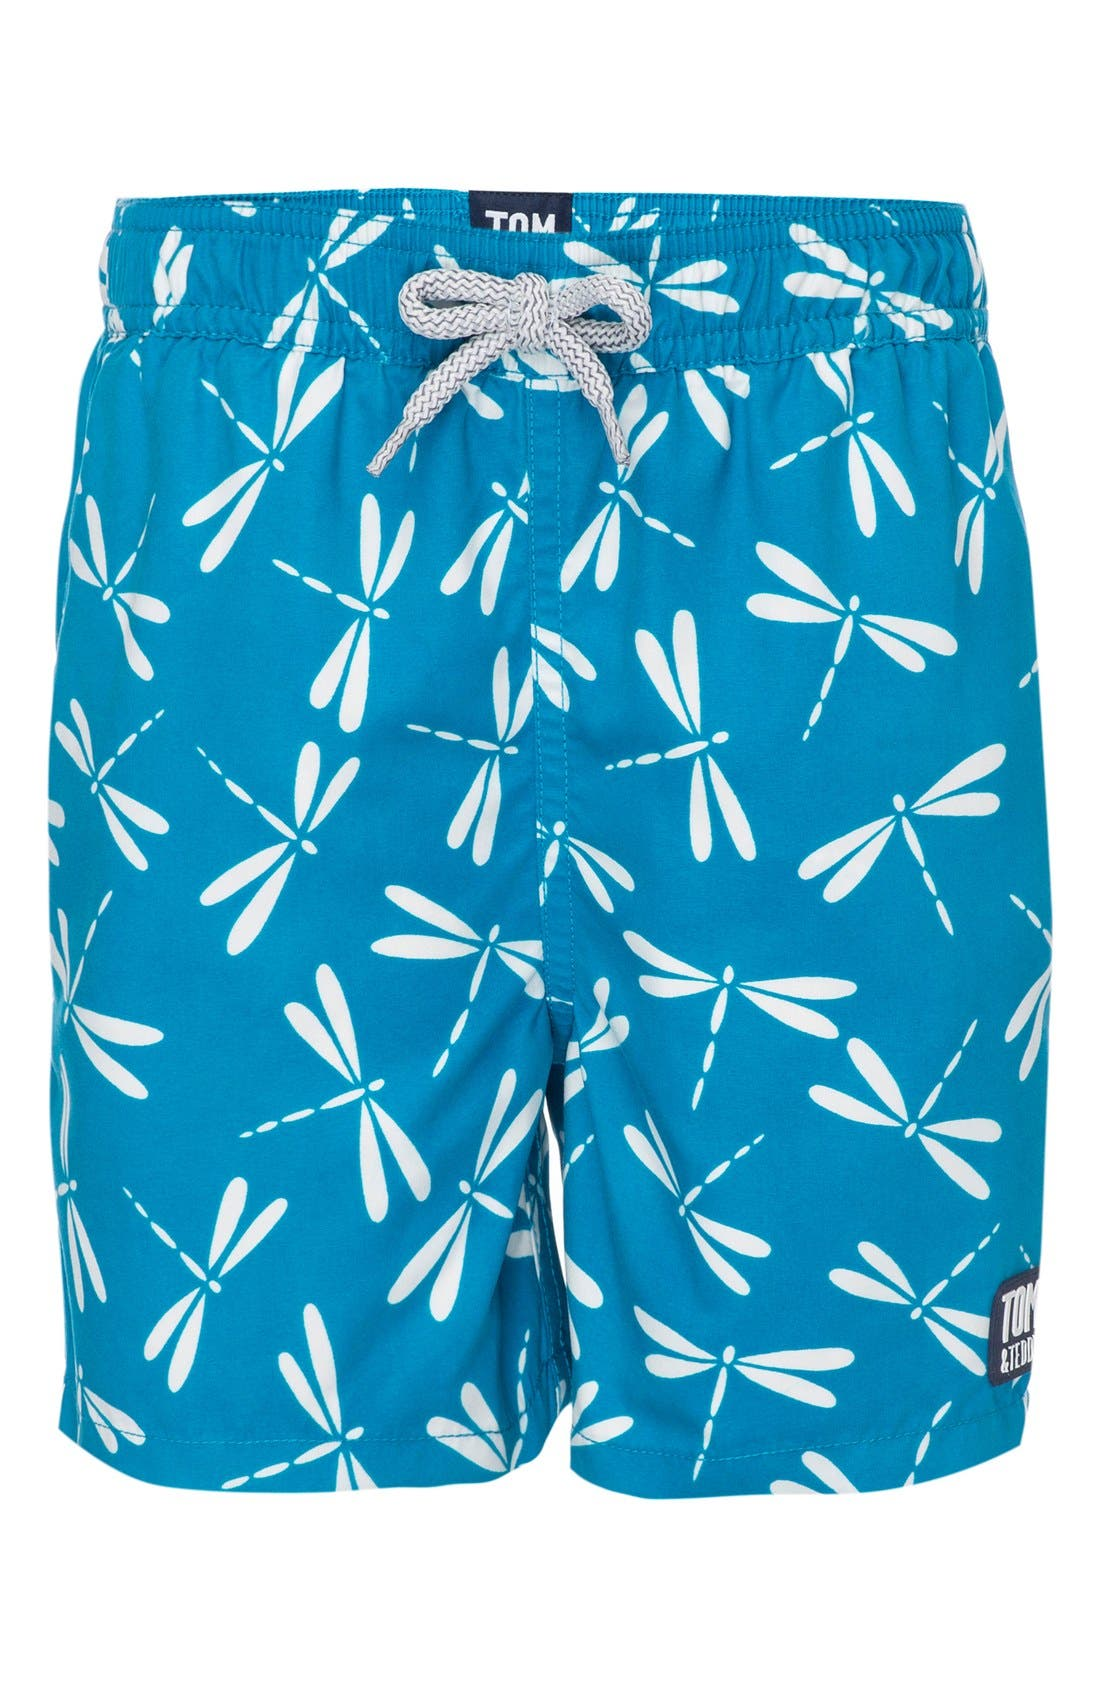 Tom & Teddy Dragonfly Swim Trunks (Toddler Boys, Little Boys & Big Boys)